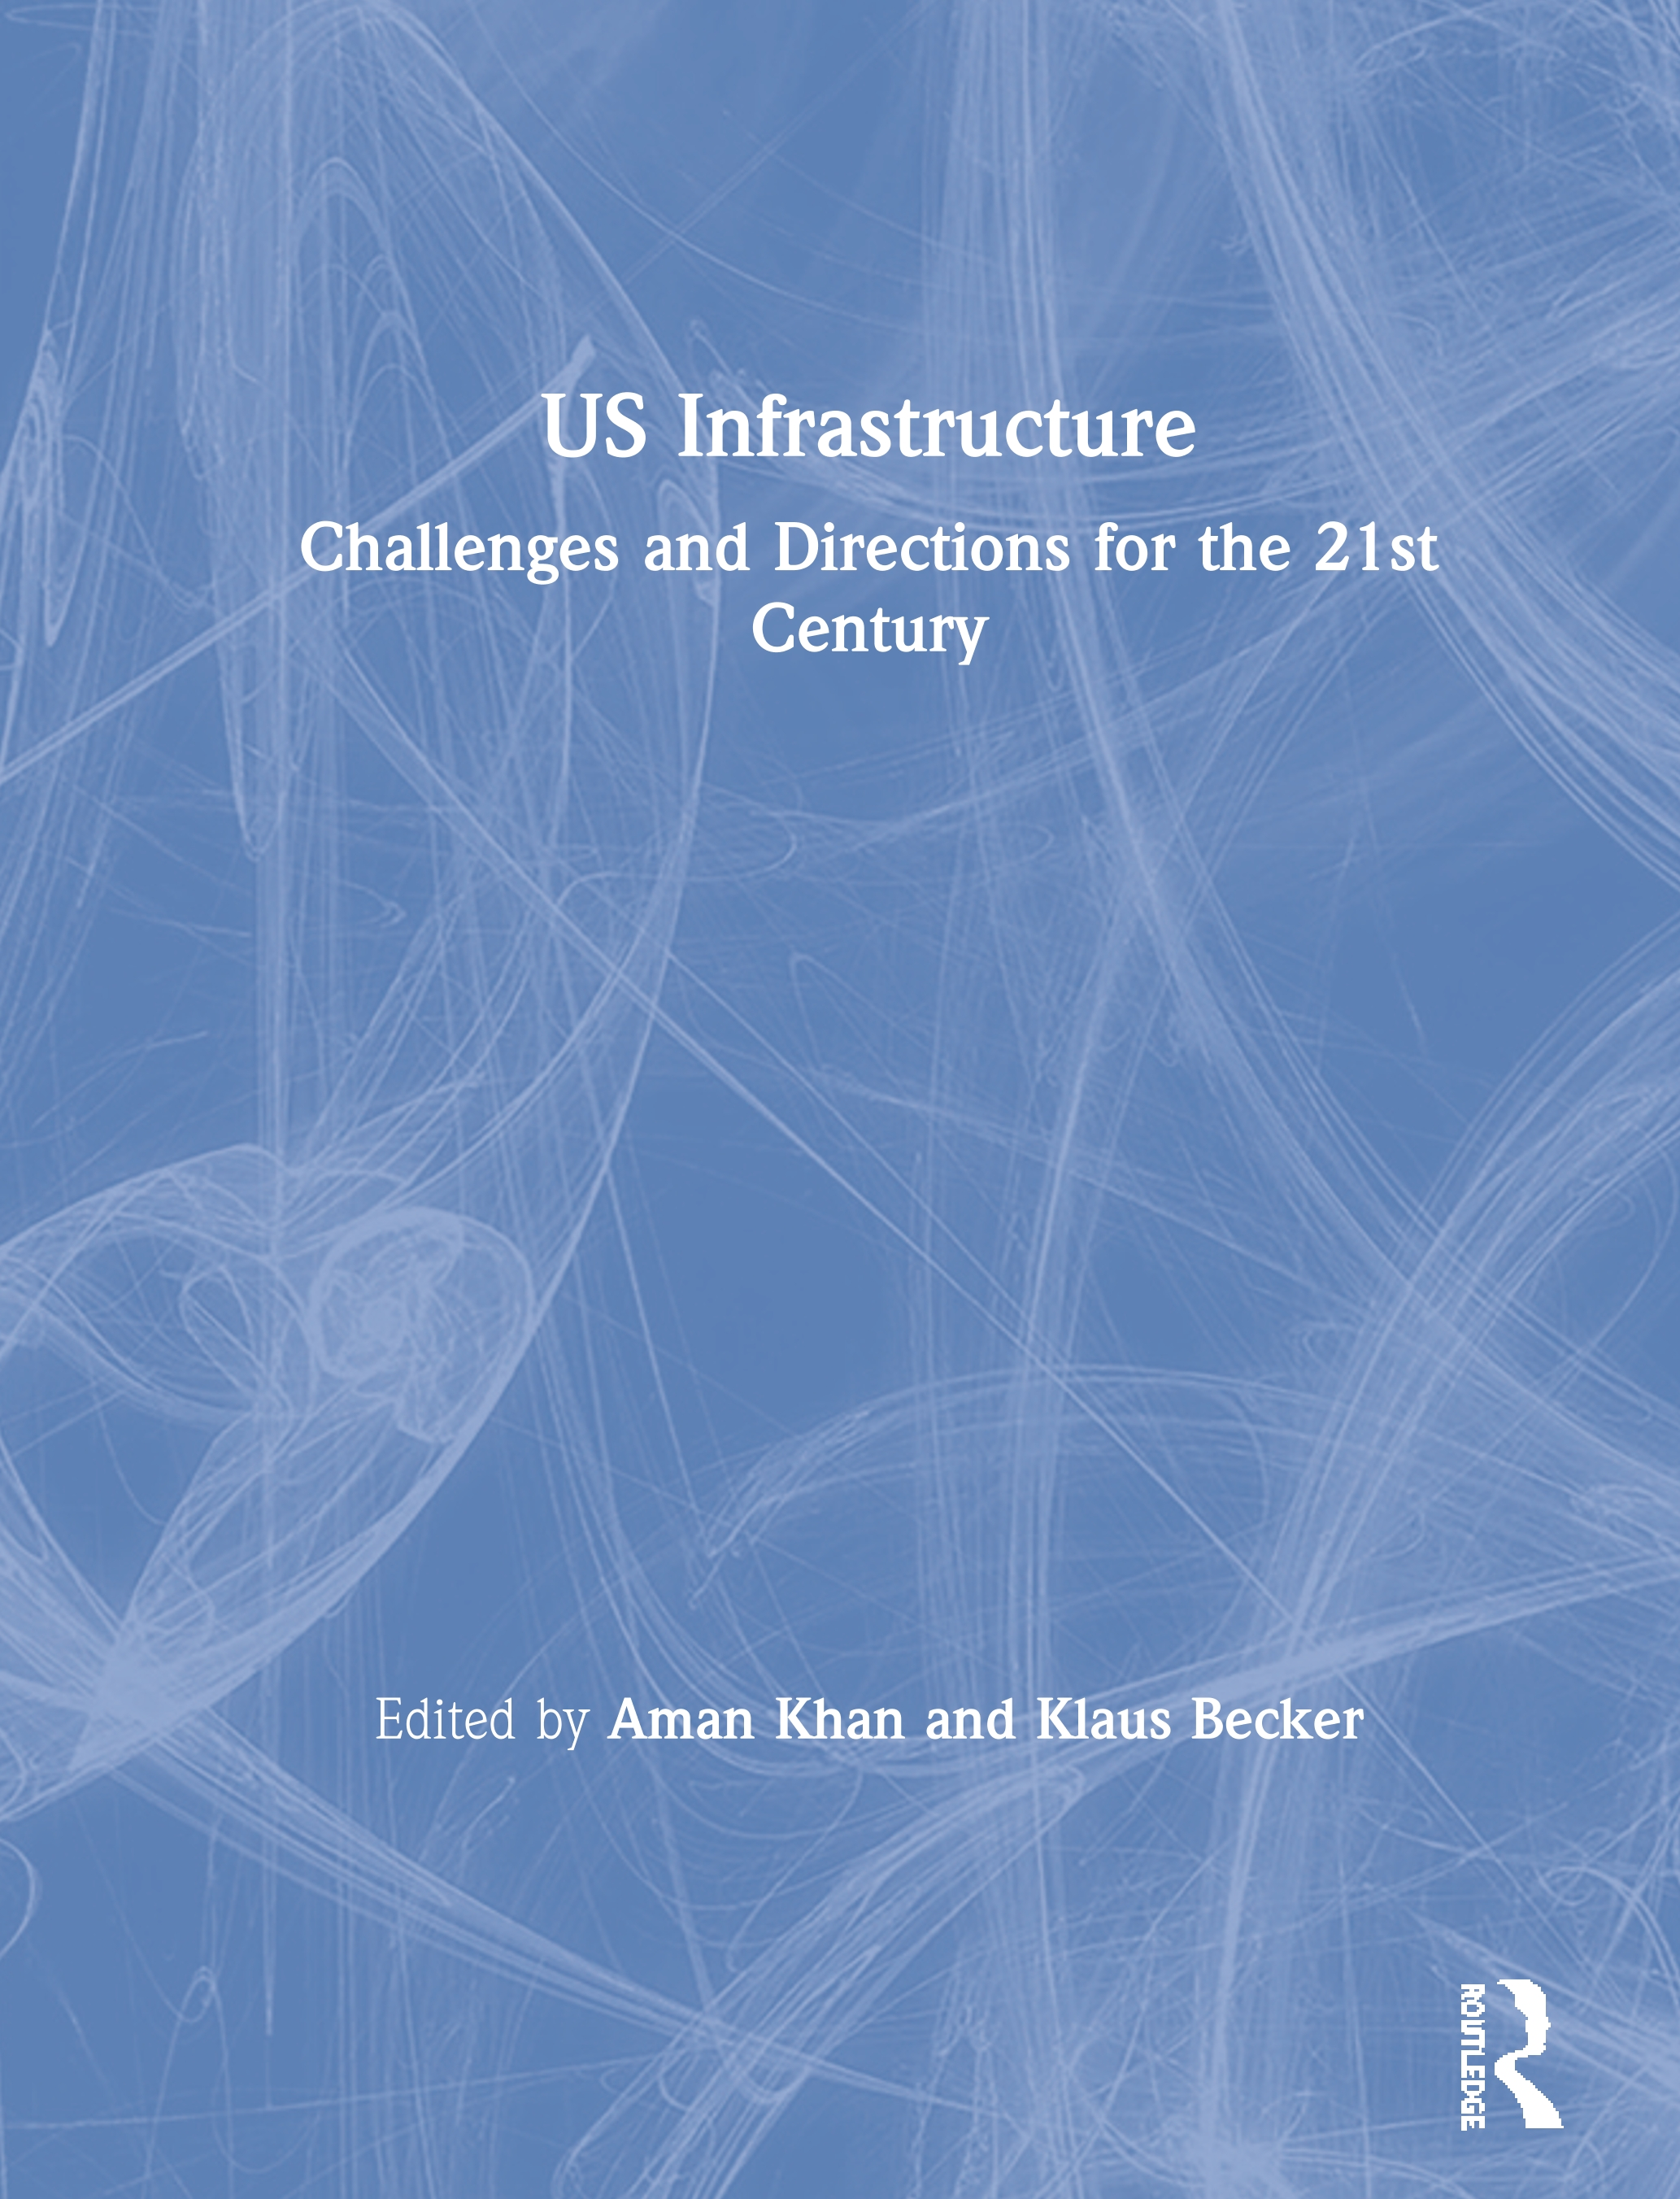 US Infrastructure: Challenges and Directions for the 21st Century book cover